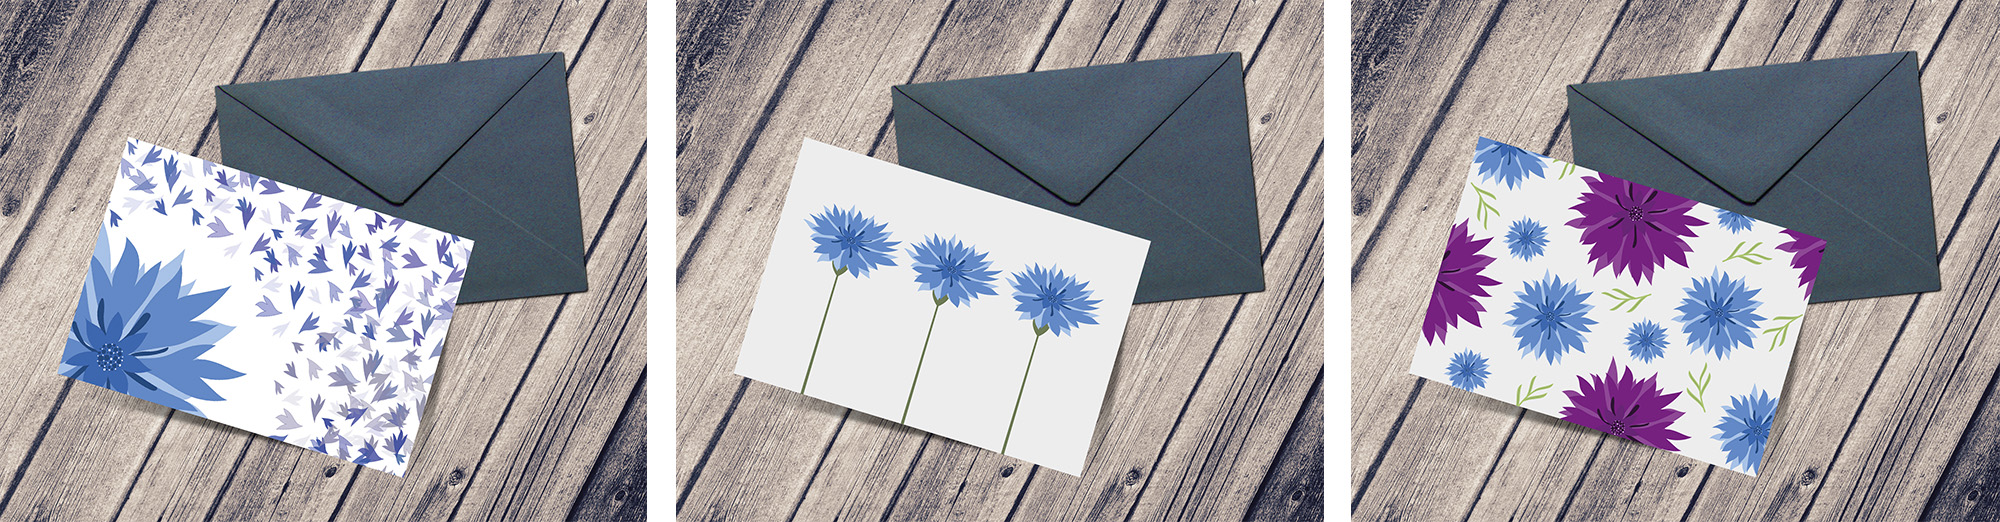 Despite having set out to only select two concepts, ALS decided to move ahead with 3 of the designs to create a family of greeting cards to be used for different purposes:      In Honour/Memory, General Messages and Celebration.